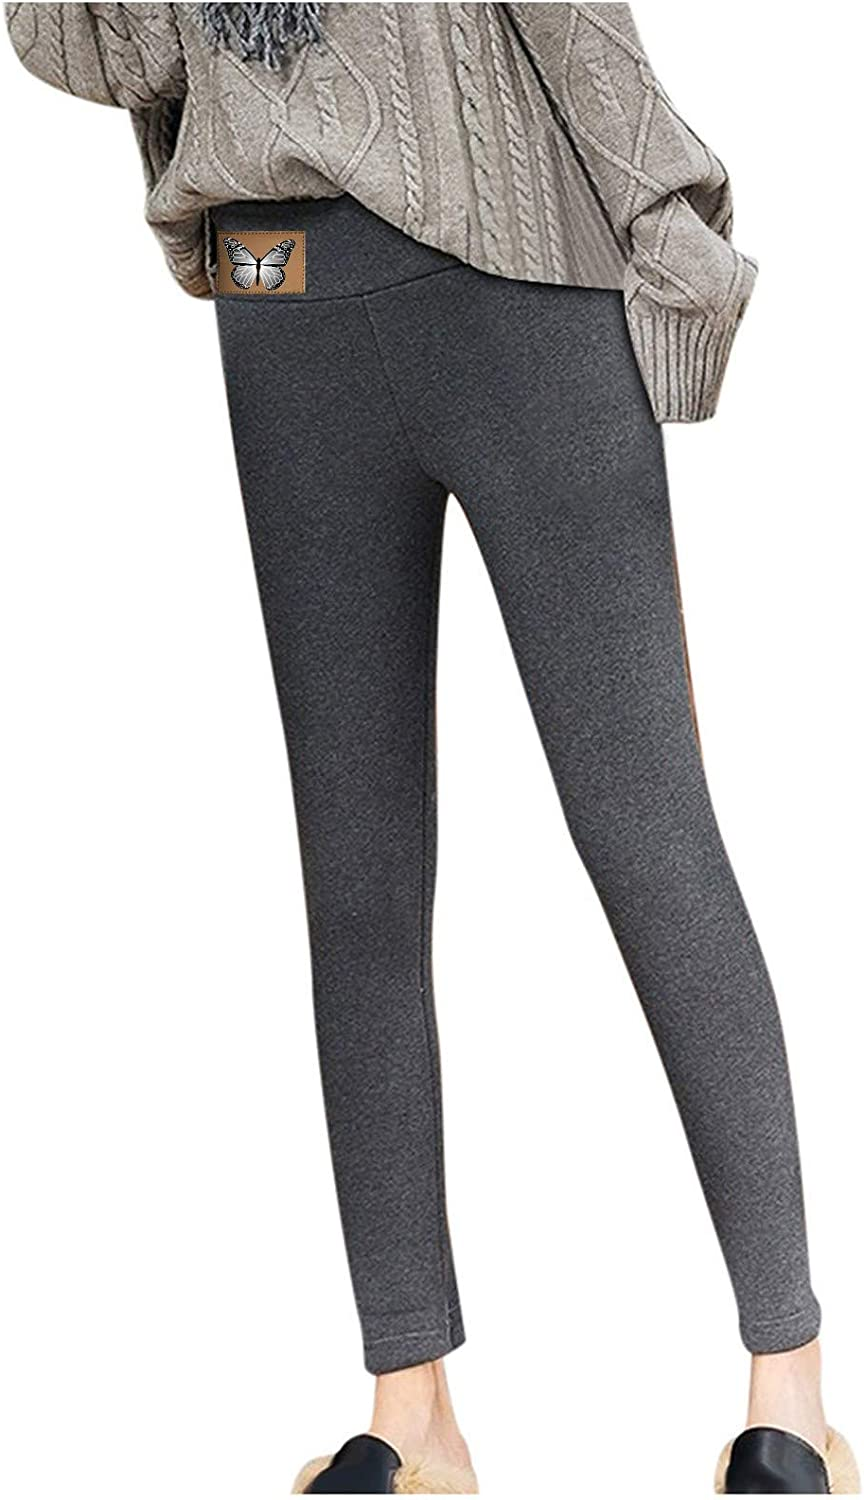 Long Leggings for Women Winter Fleece Pants Safety and trust Casual Warm Popular Lined Hi